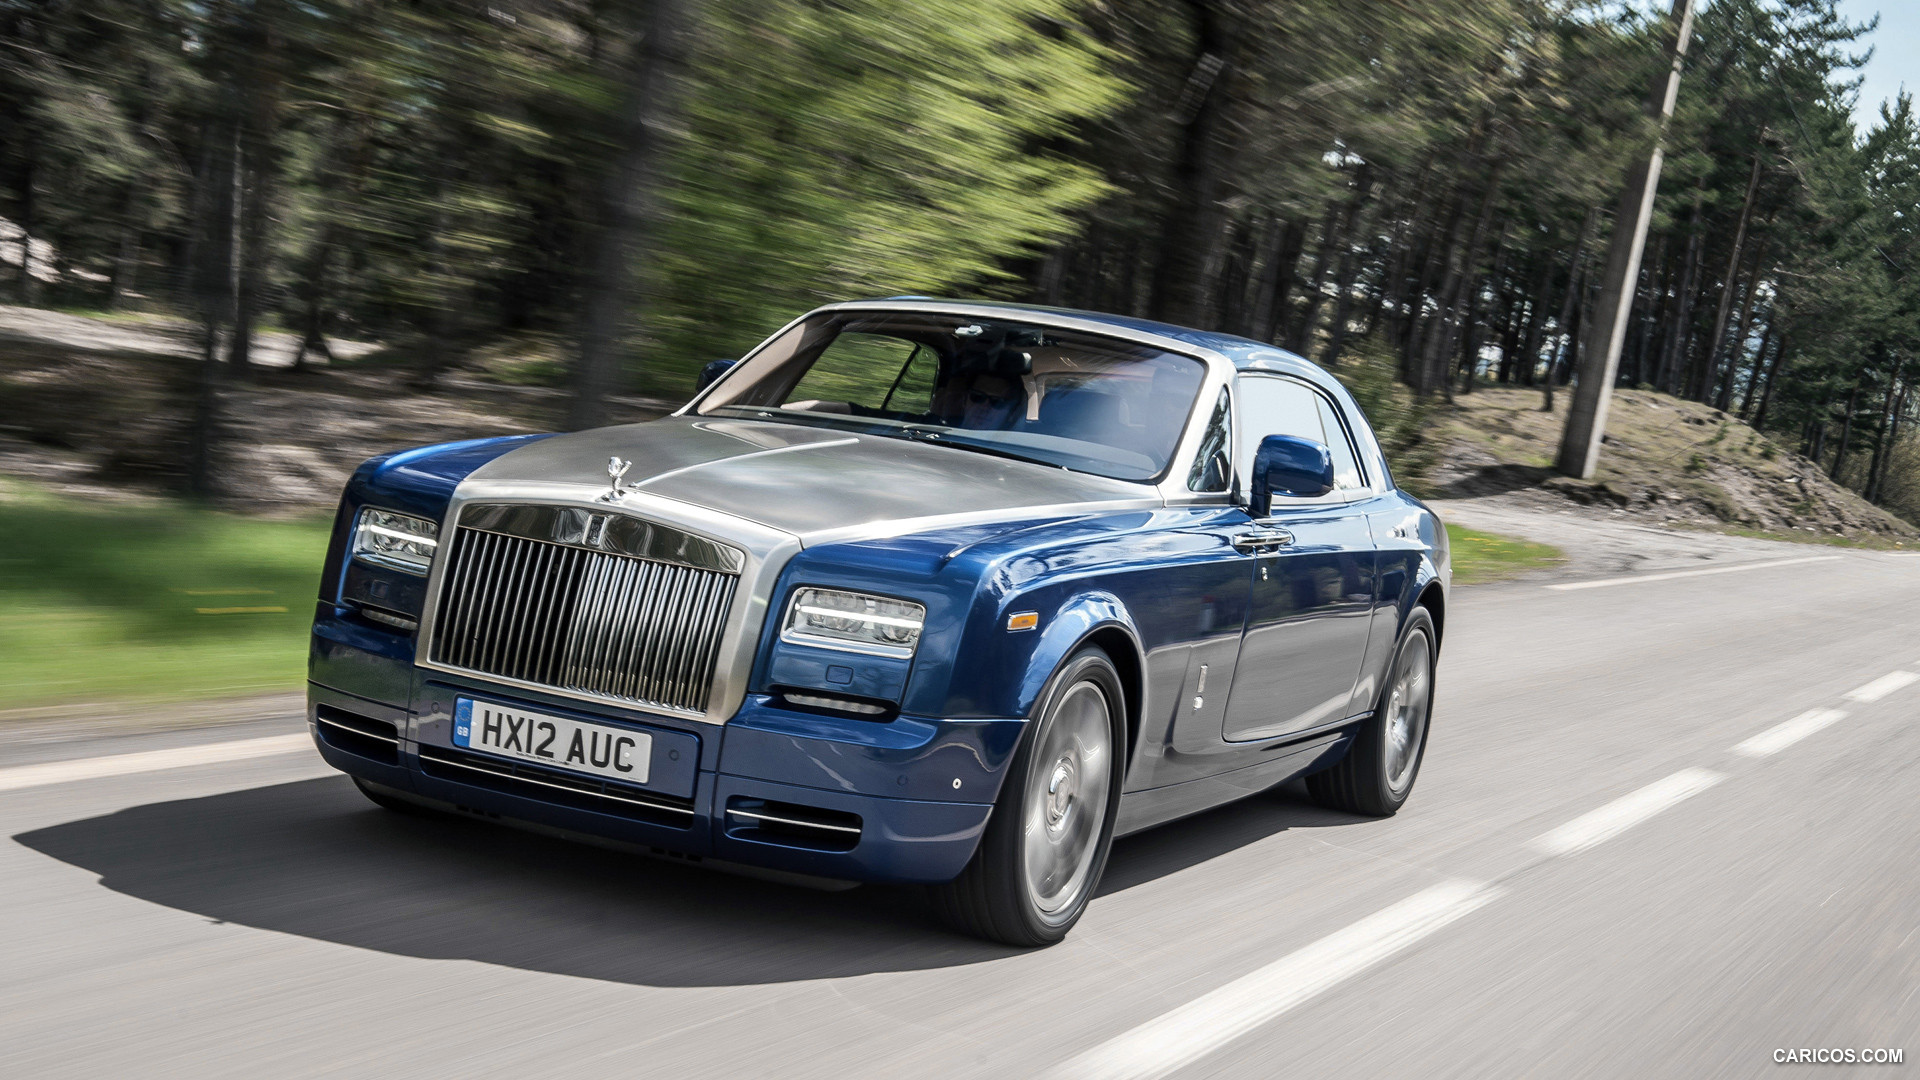 2013 Rolls royce Phantom #4